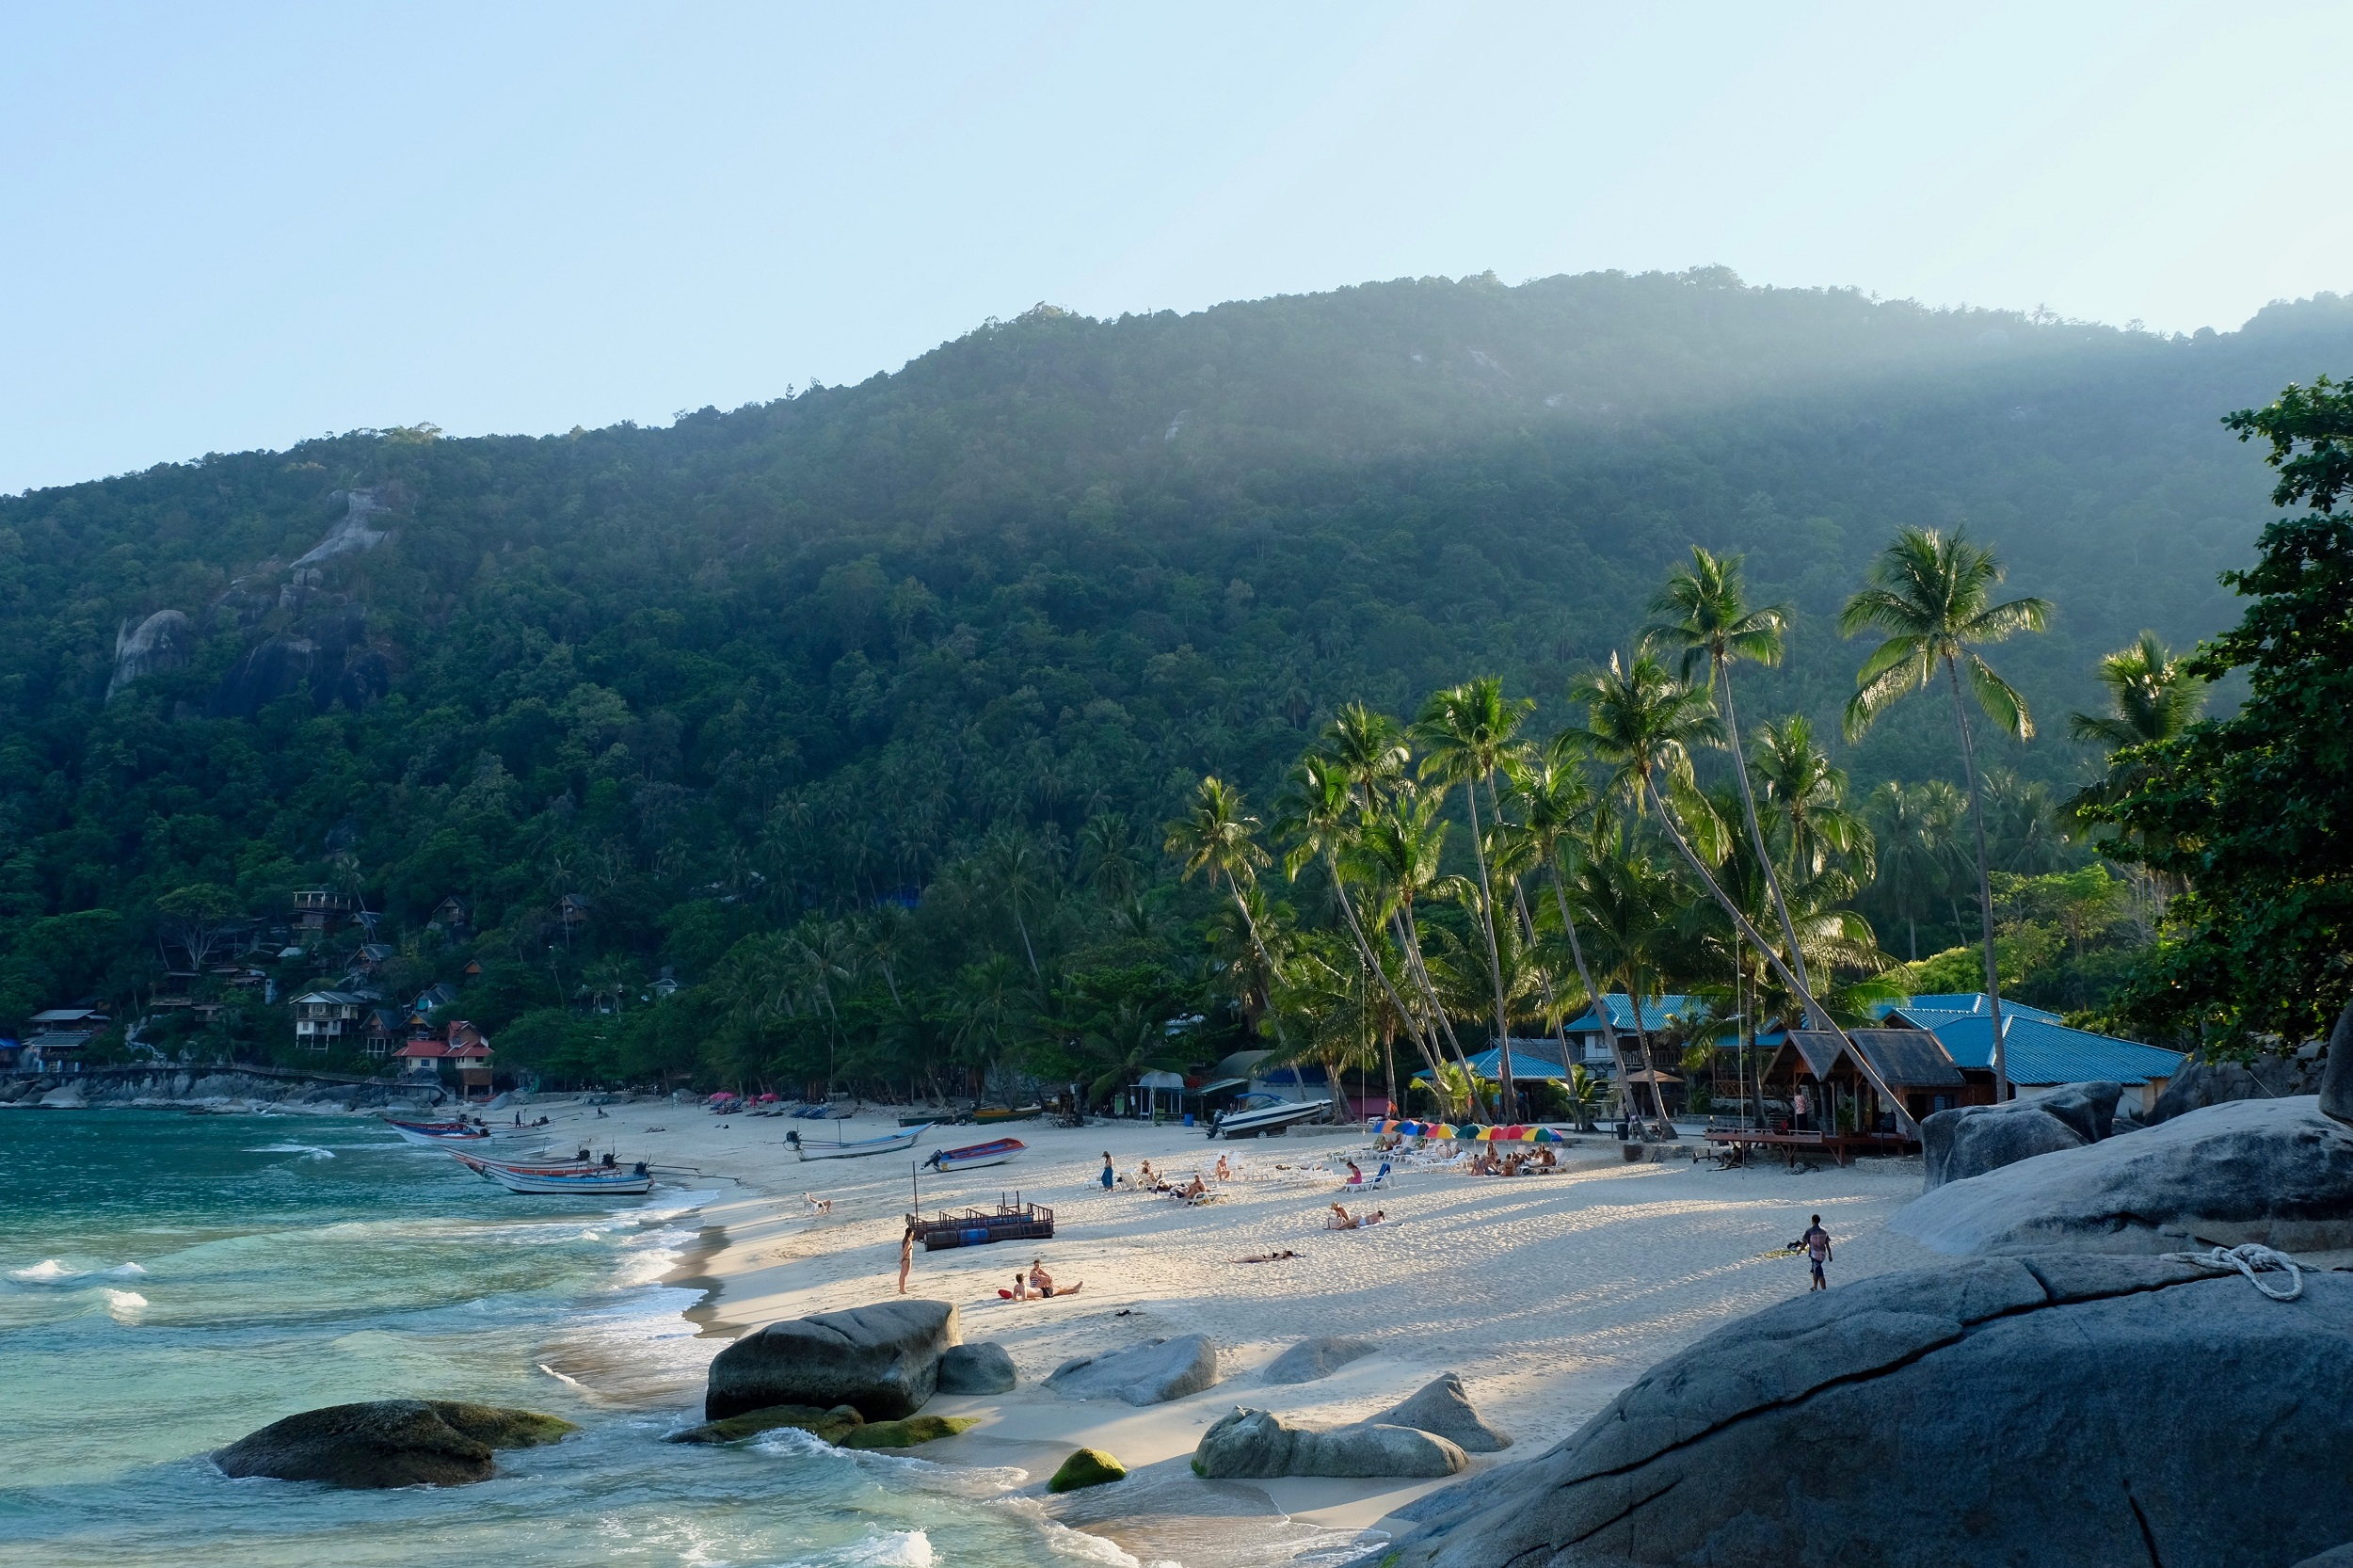 View of a beach on Ko Pha-Ngan island